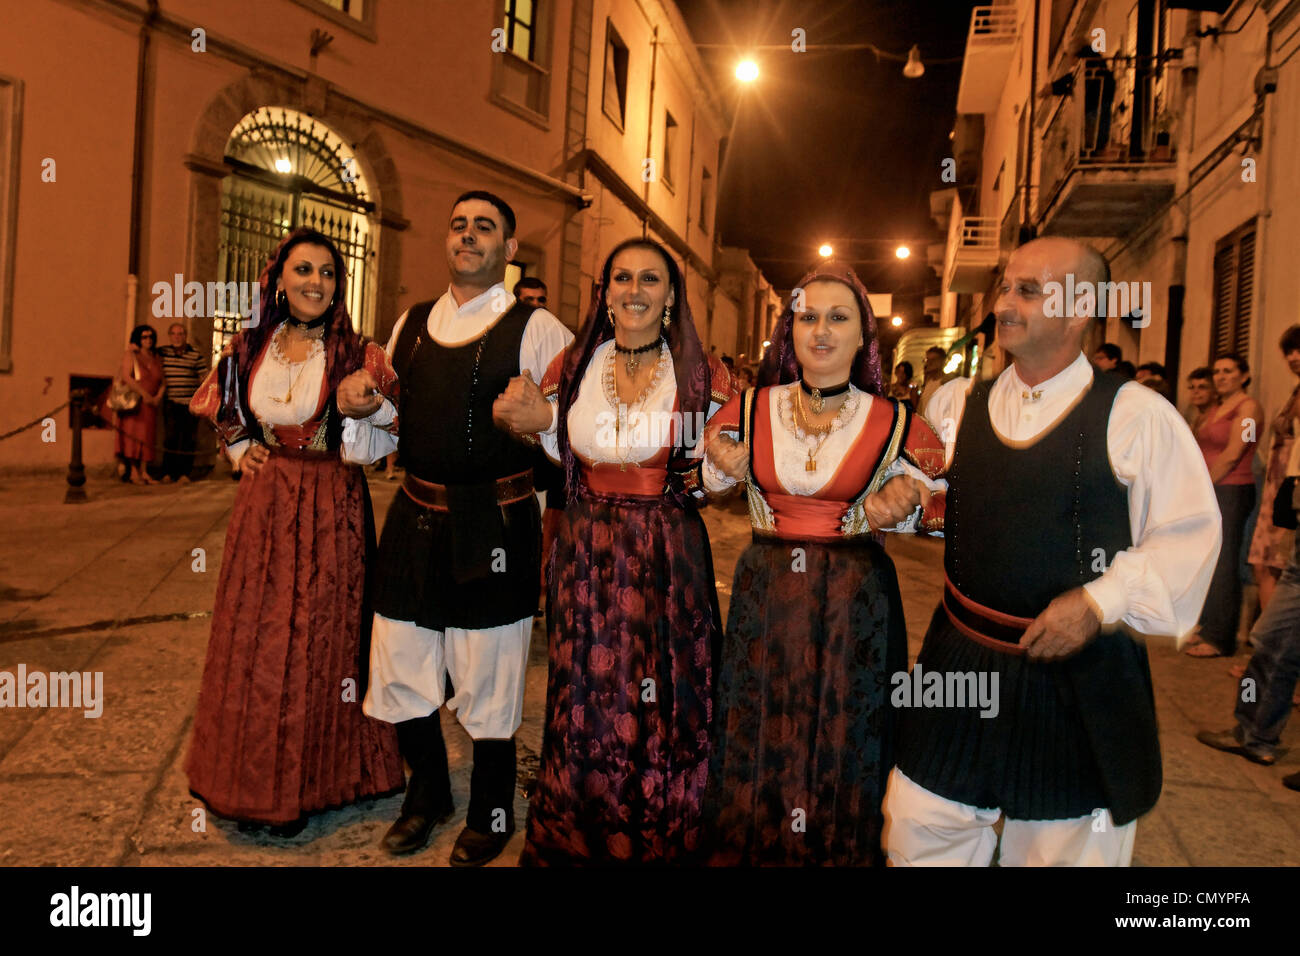 Italy Sardinia Olbia, dance performance with  traditional costumes - Stock Image